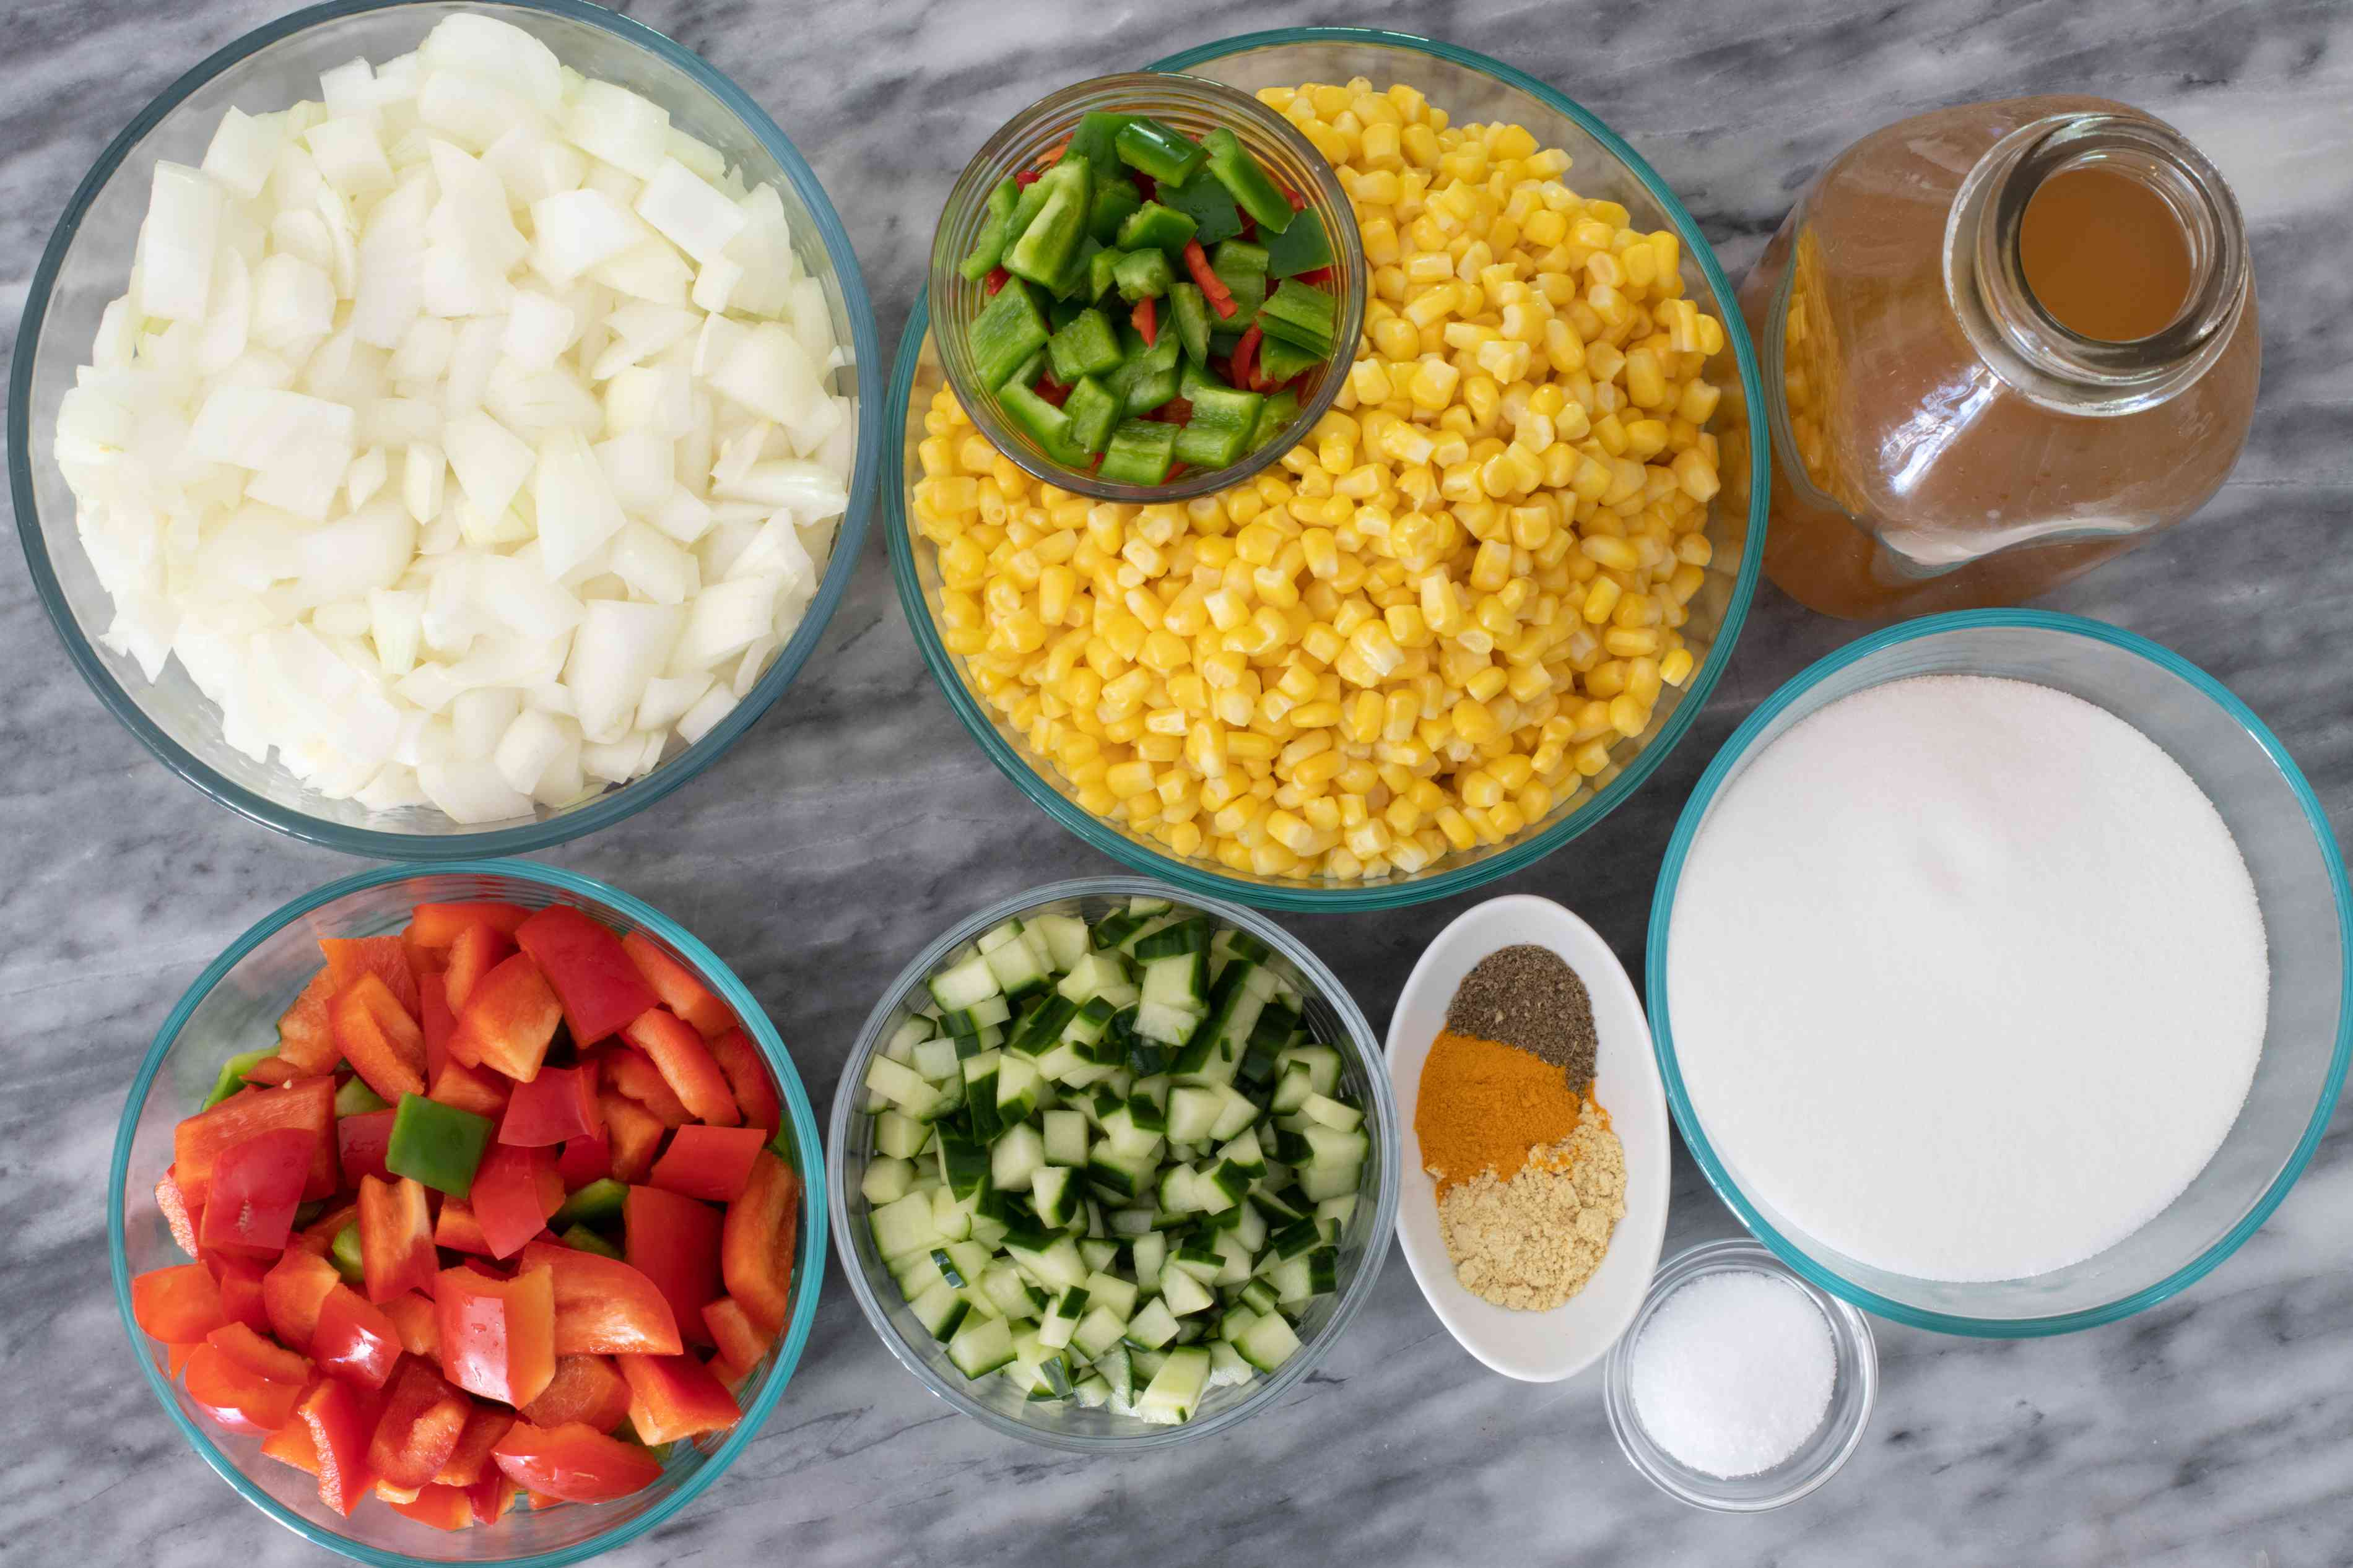 Ingredients for corn relish.